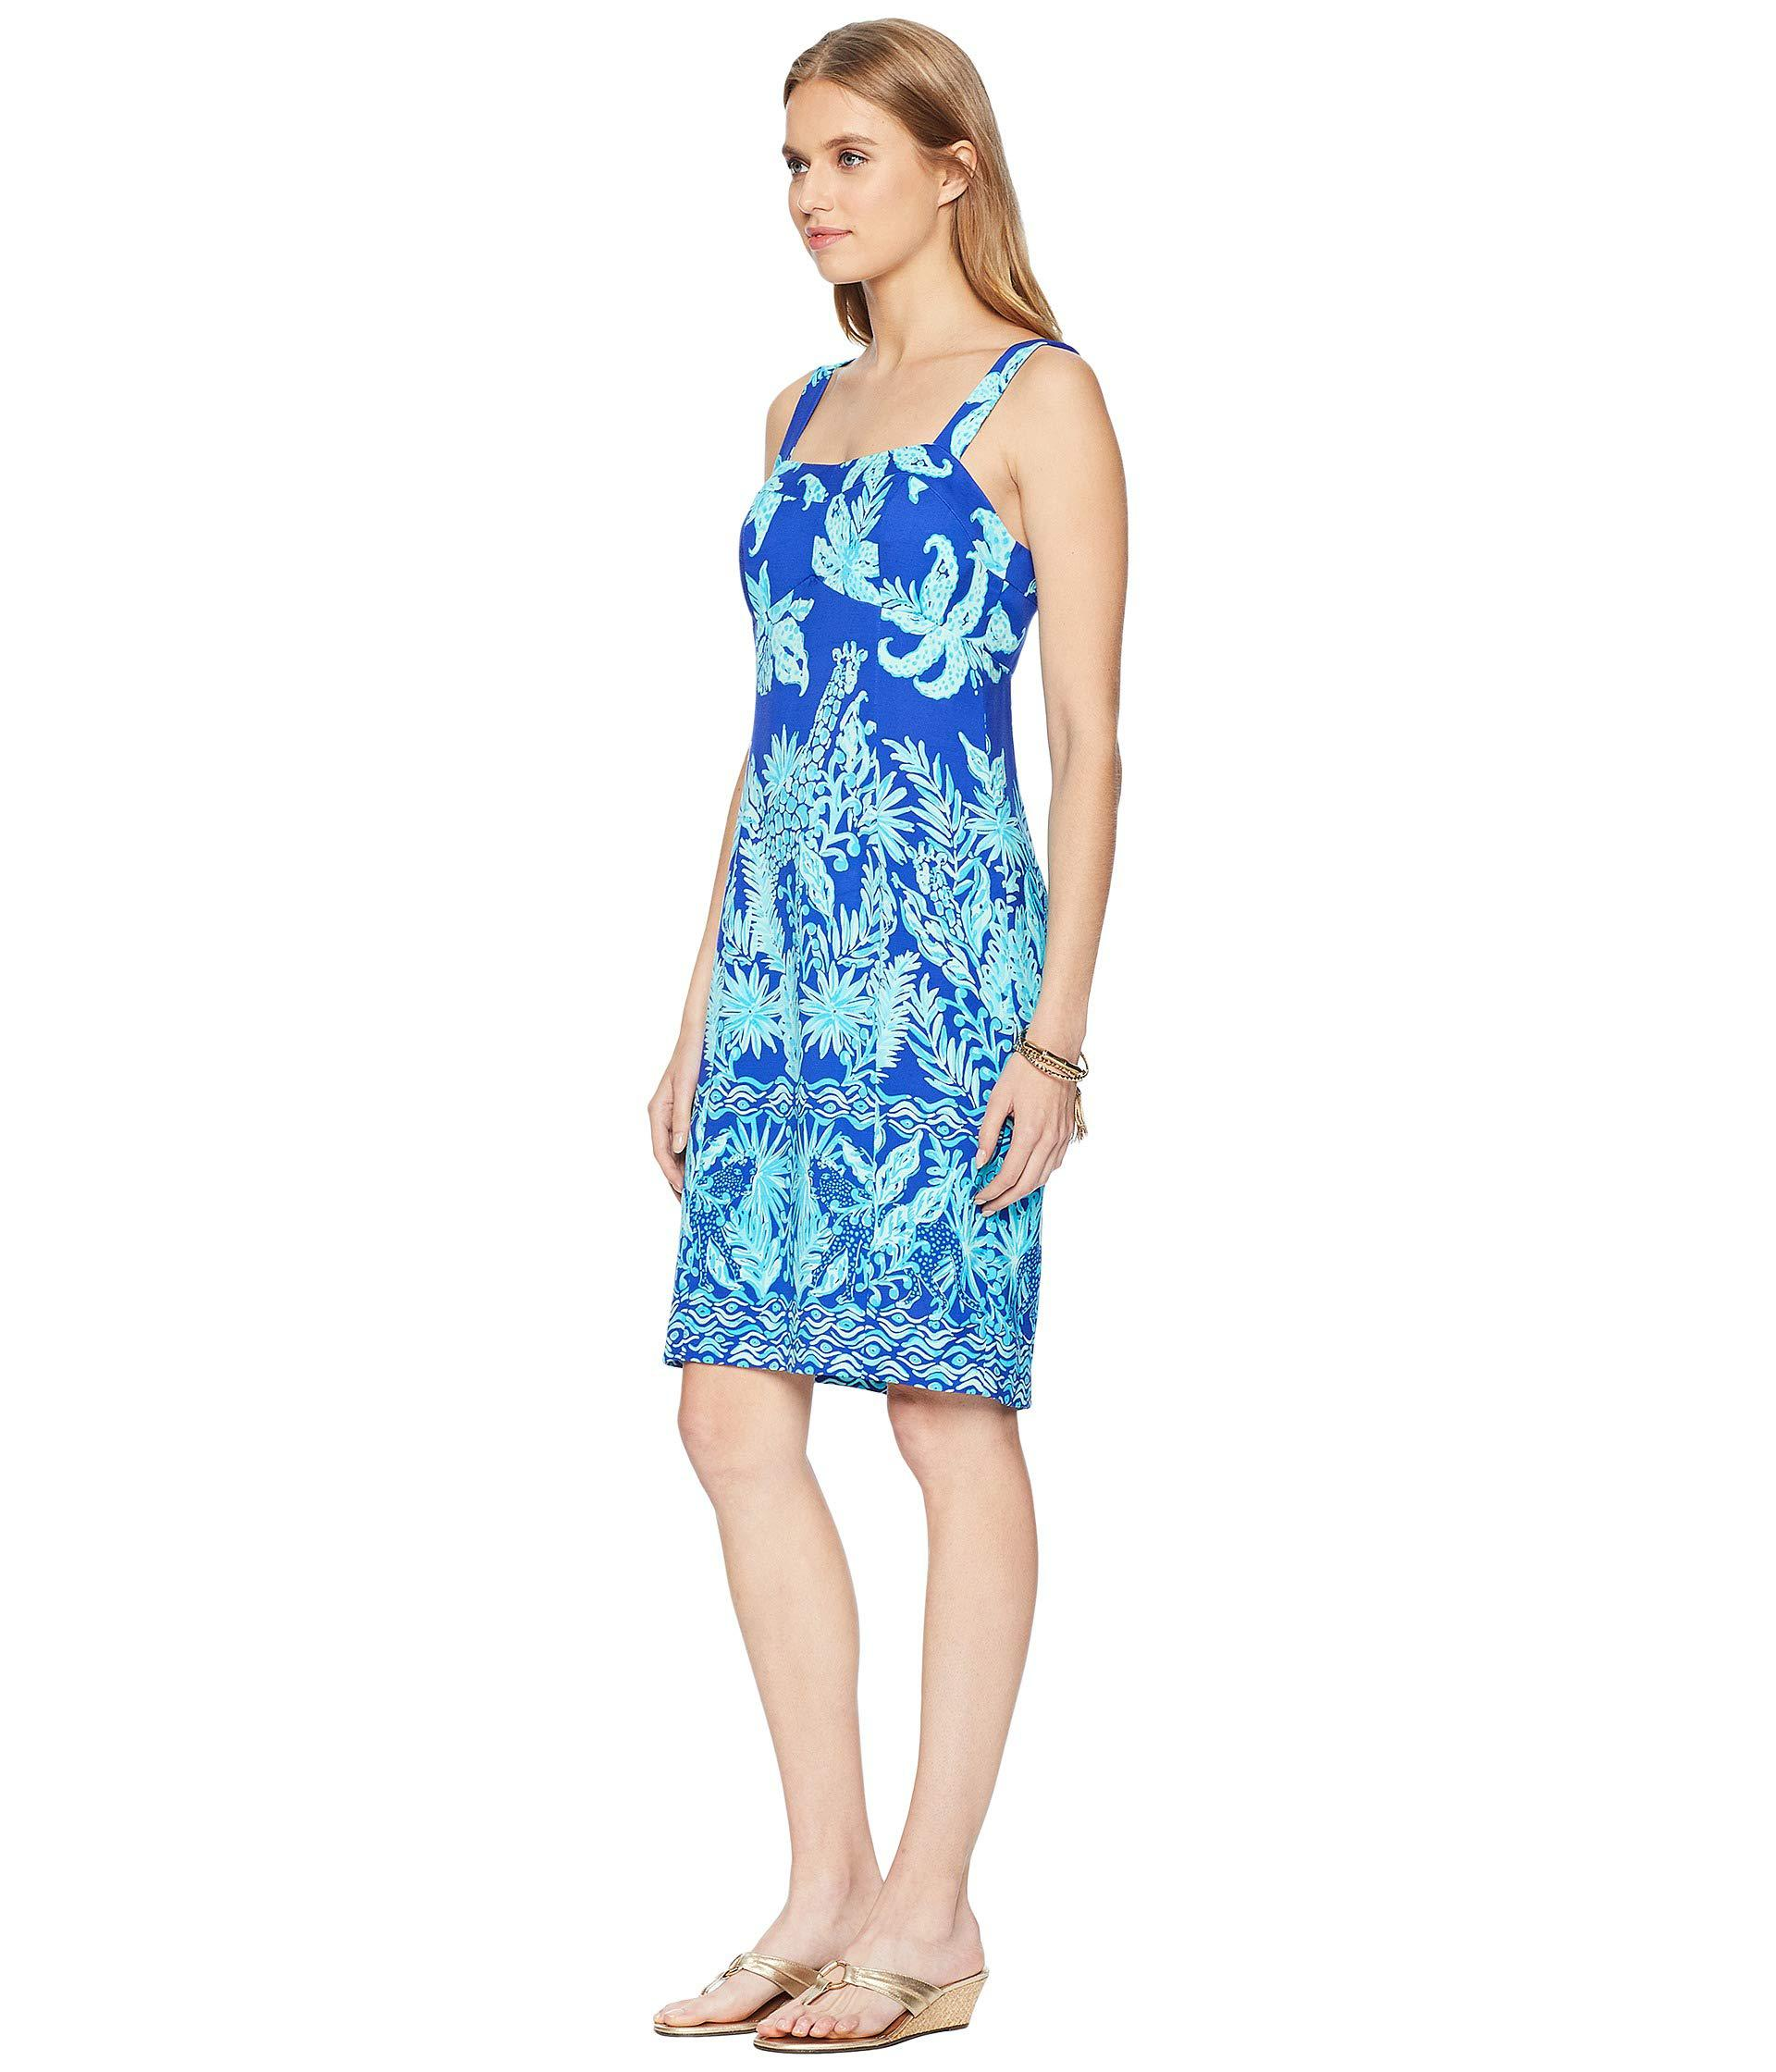 acd7ce07007a Lyst - Lilly Pulitzer Annalee Stretch Dress (royal Purple Jungle ...